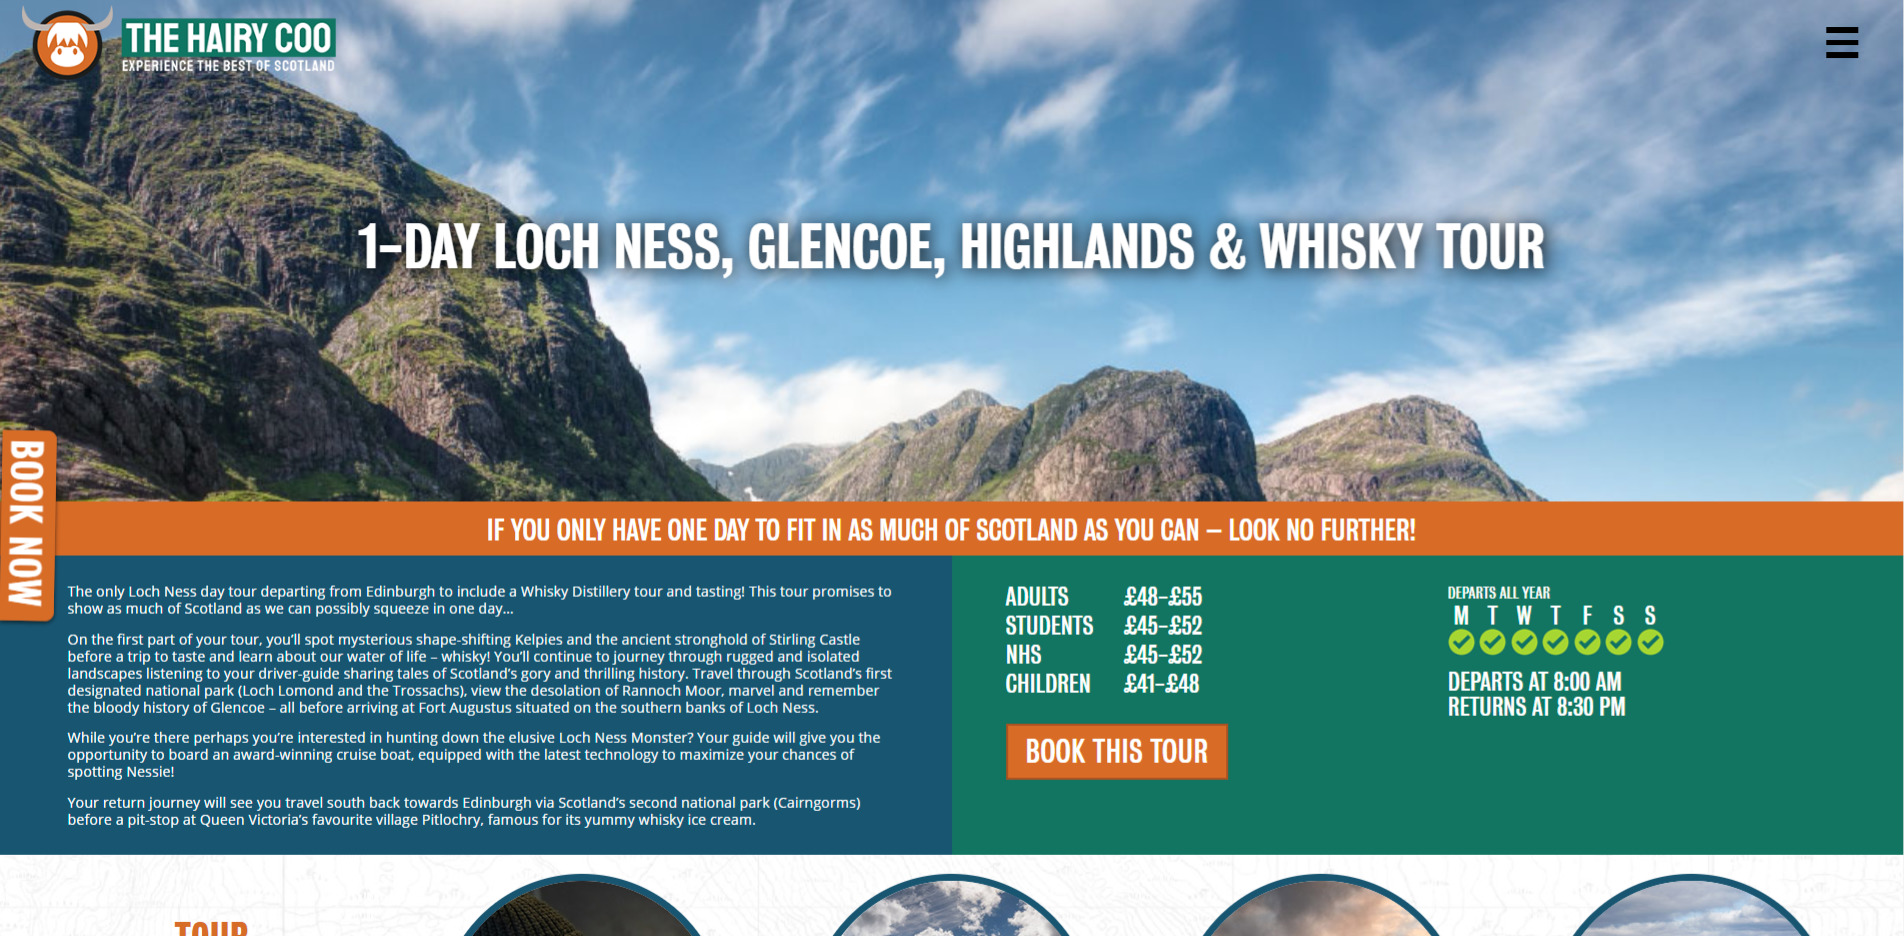 Hairy Coo Website Design 2020 Tours